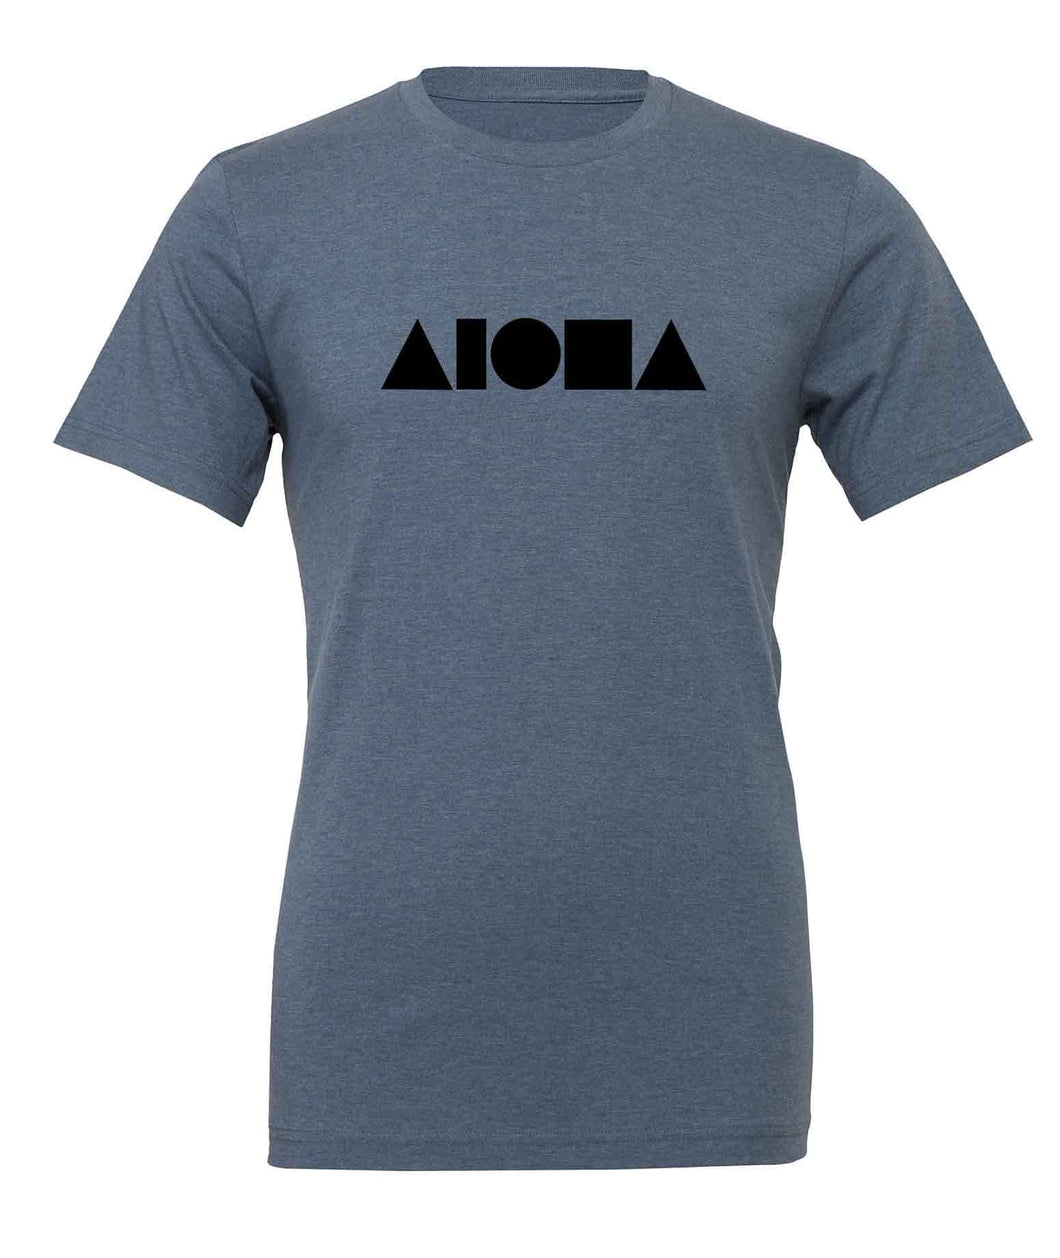 Aloha Shapes Steel Blue & Black Unisex T-shirt